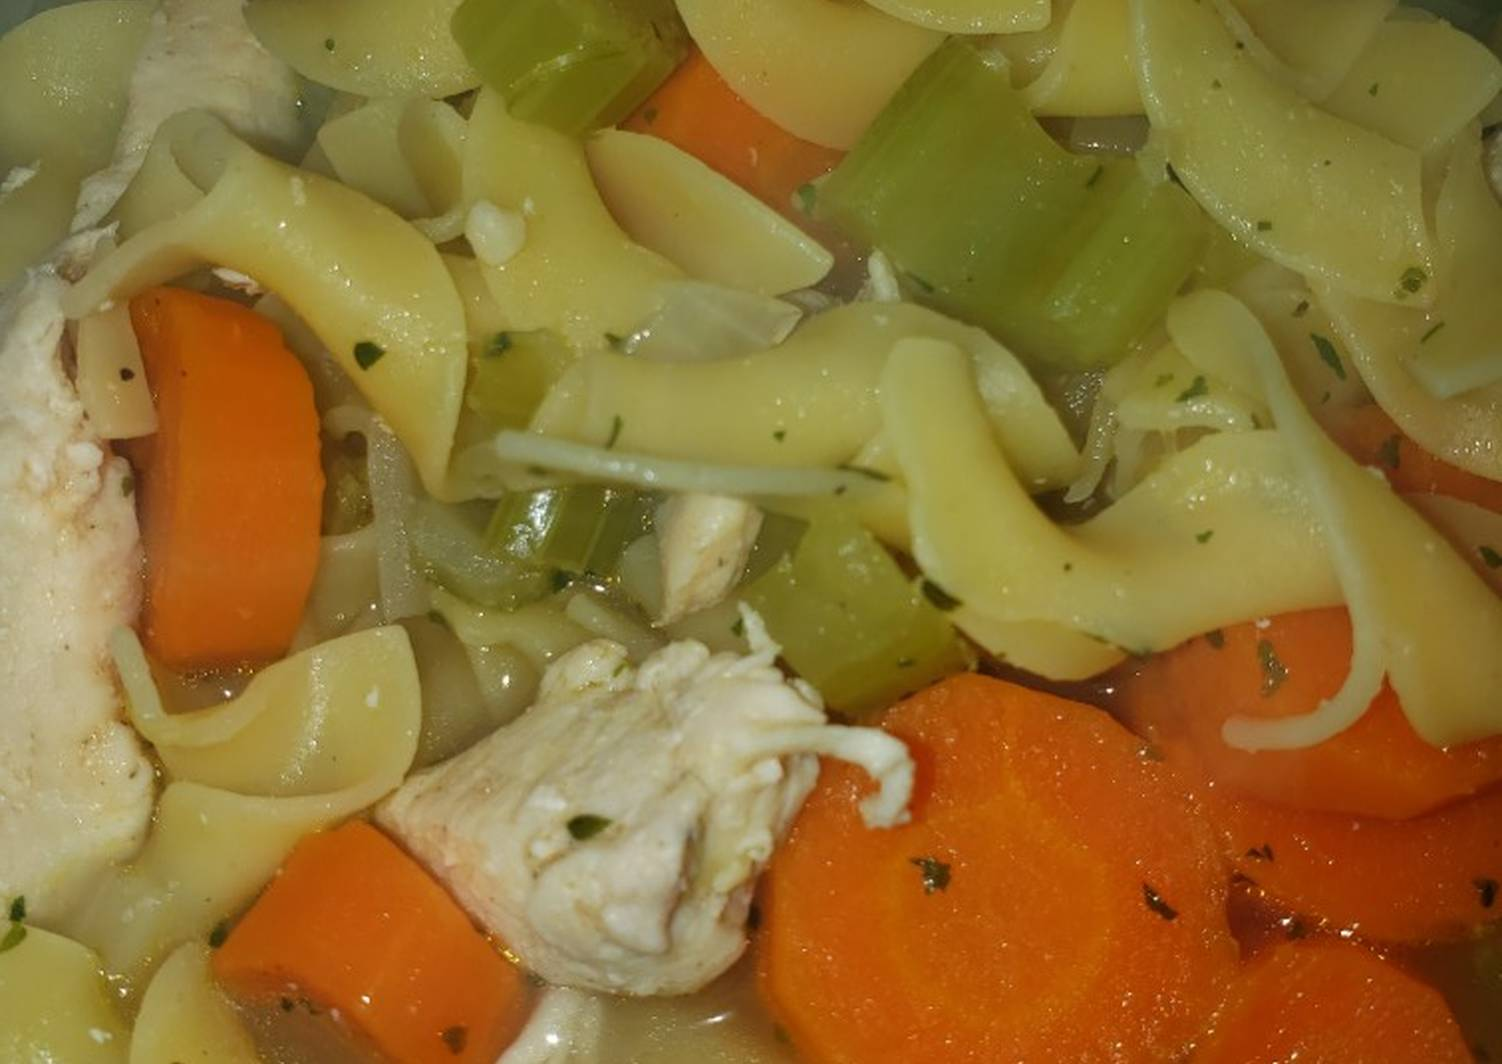 Sharon's Homemade Chicken Noodle Soup